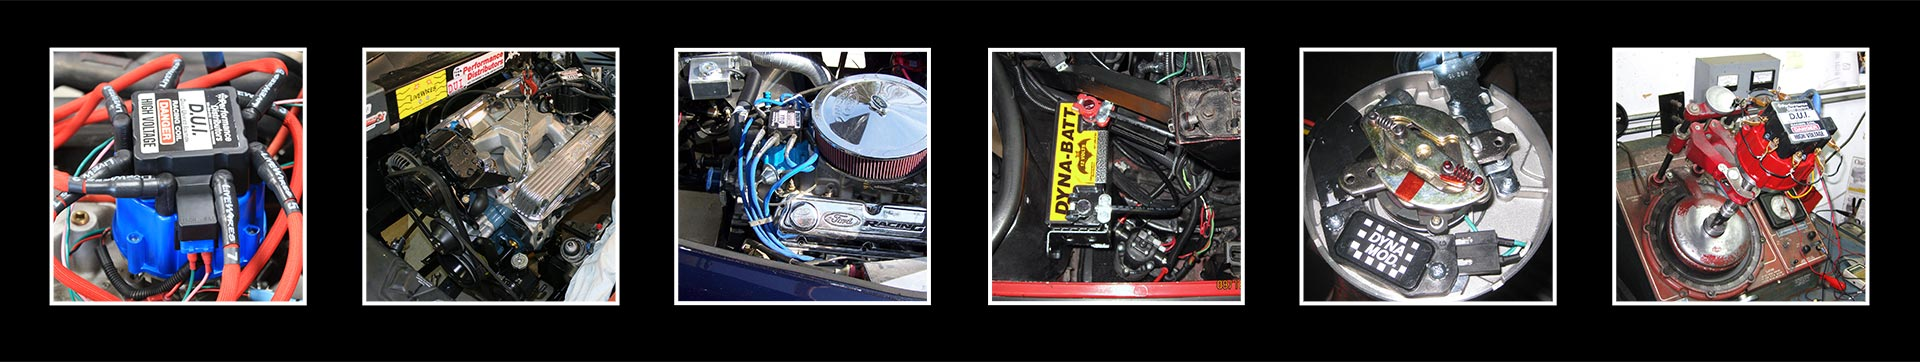 Professional Tips | Ignition Systems | Rev Limiters